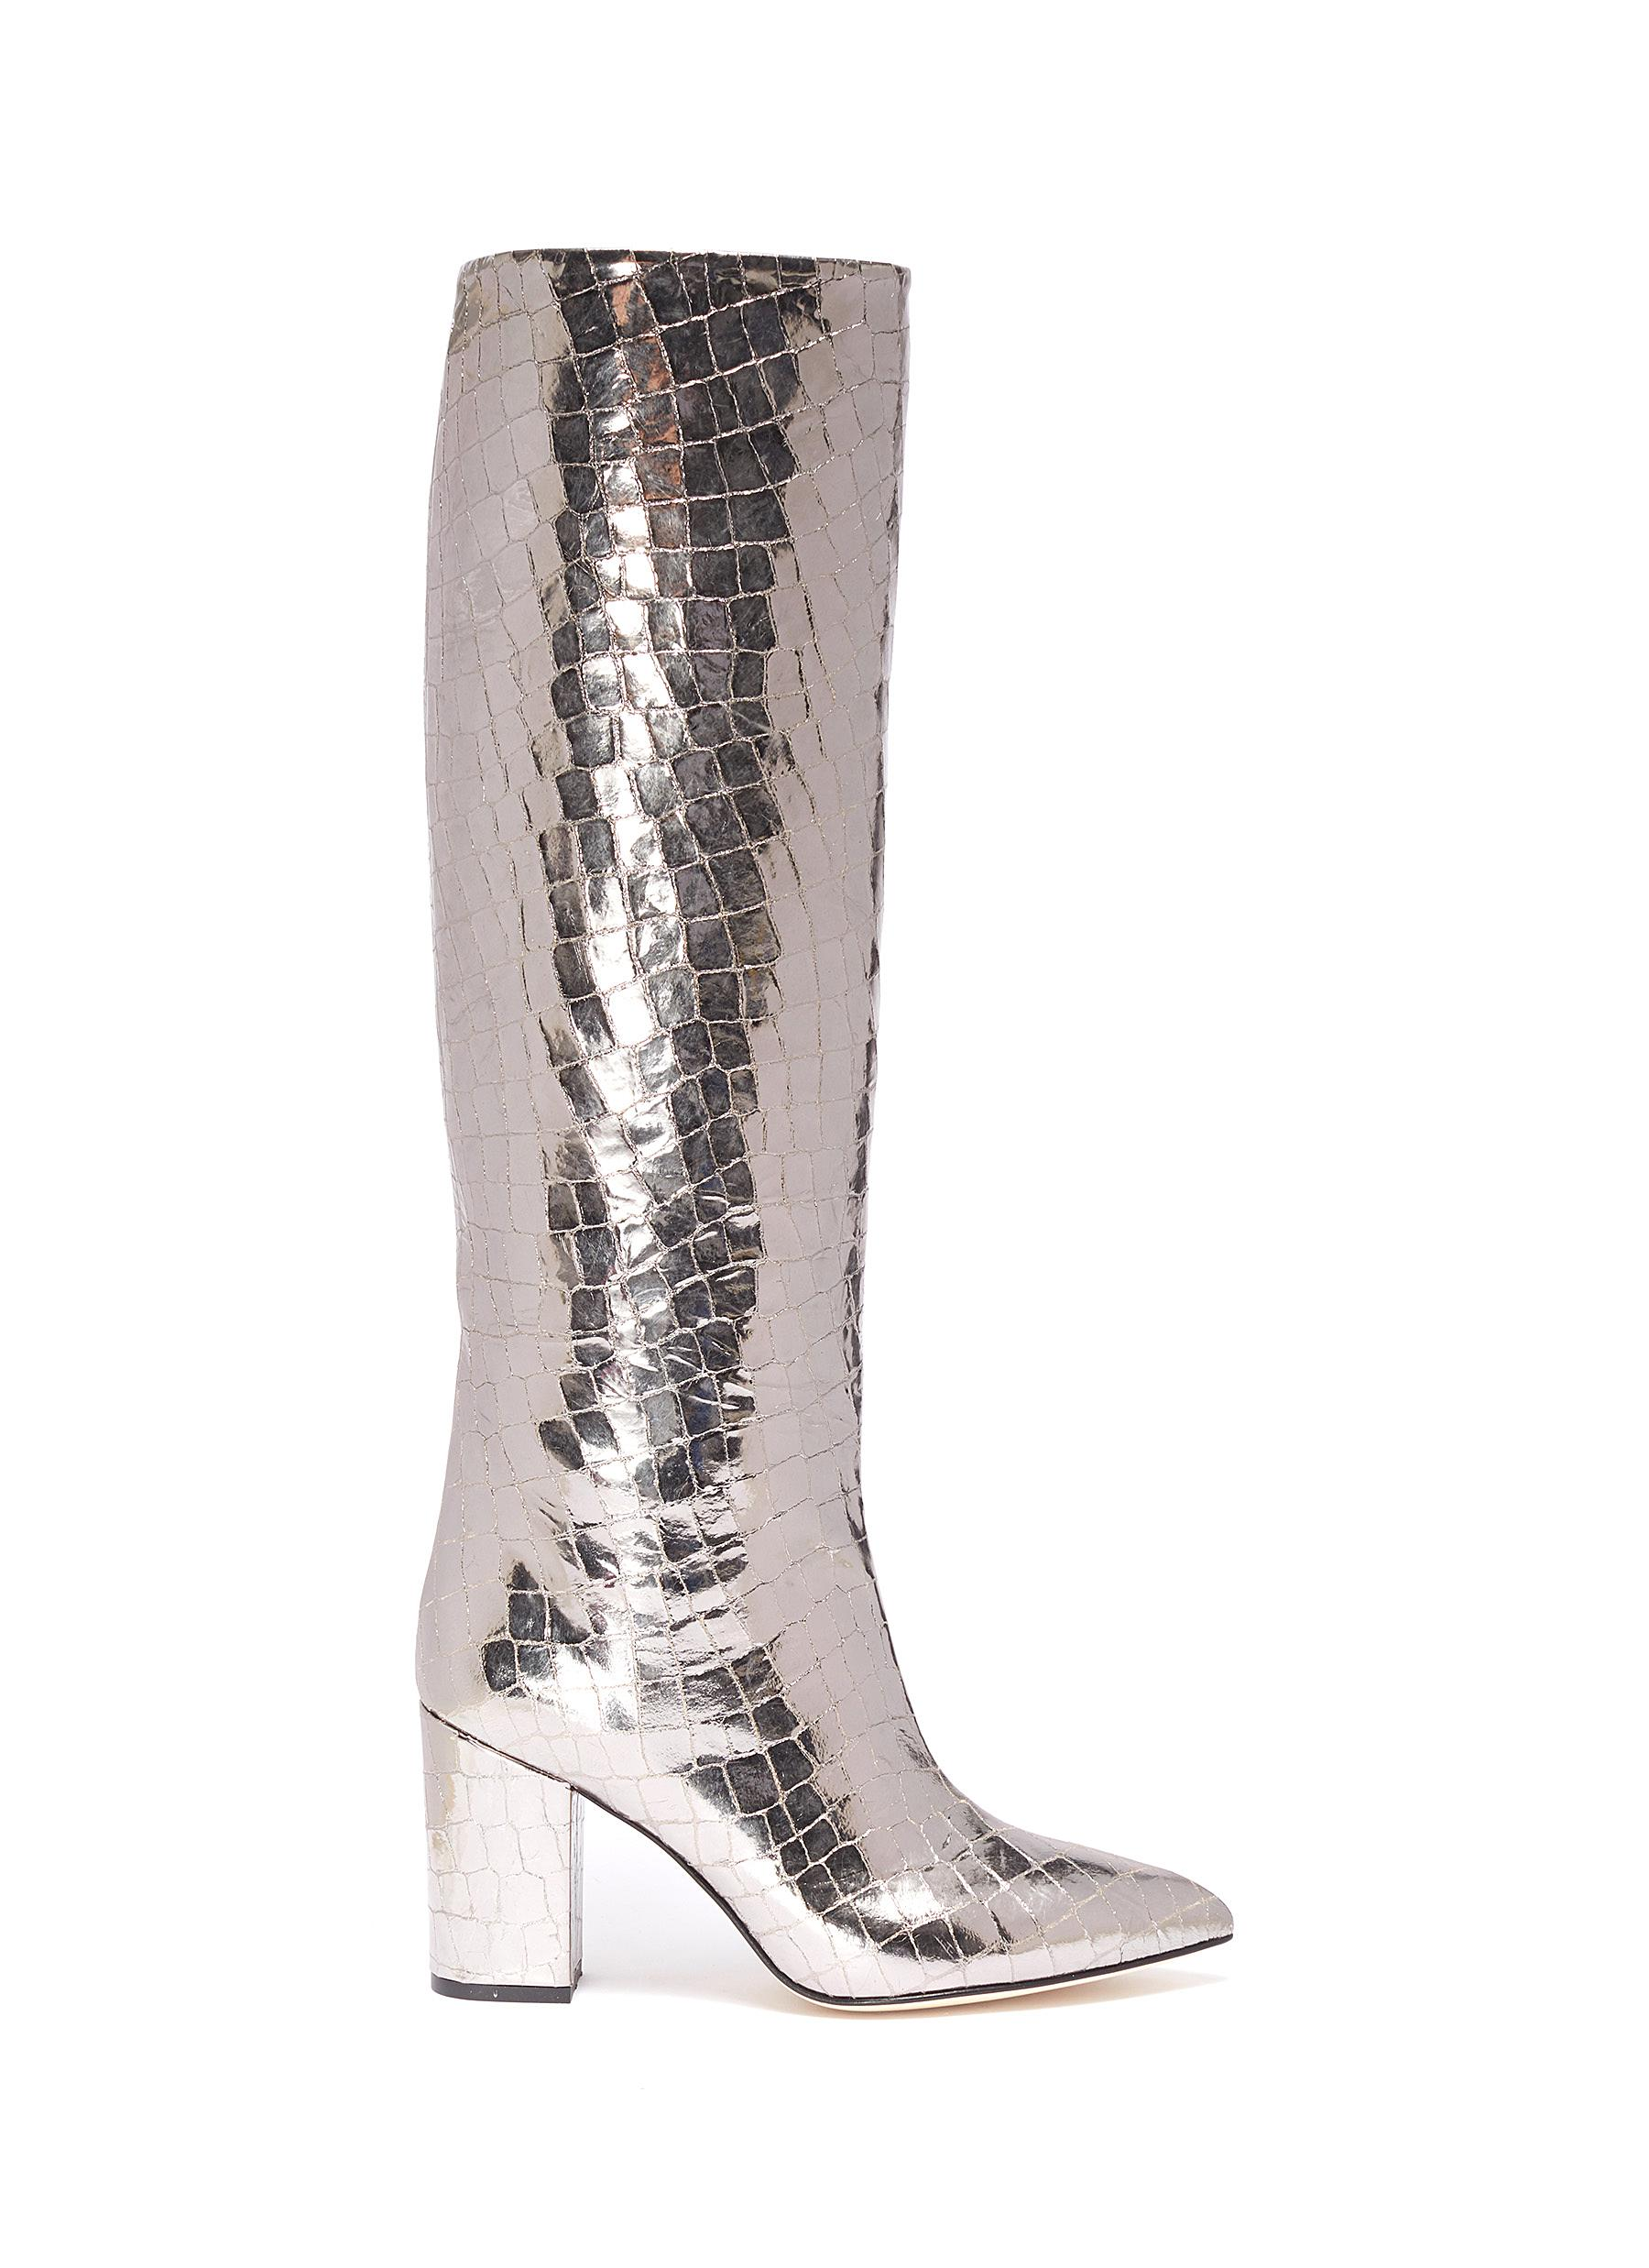 Mirror croc embossed leather knee high boots by Paris Texas